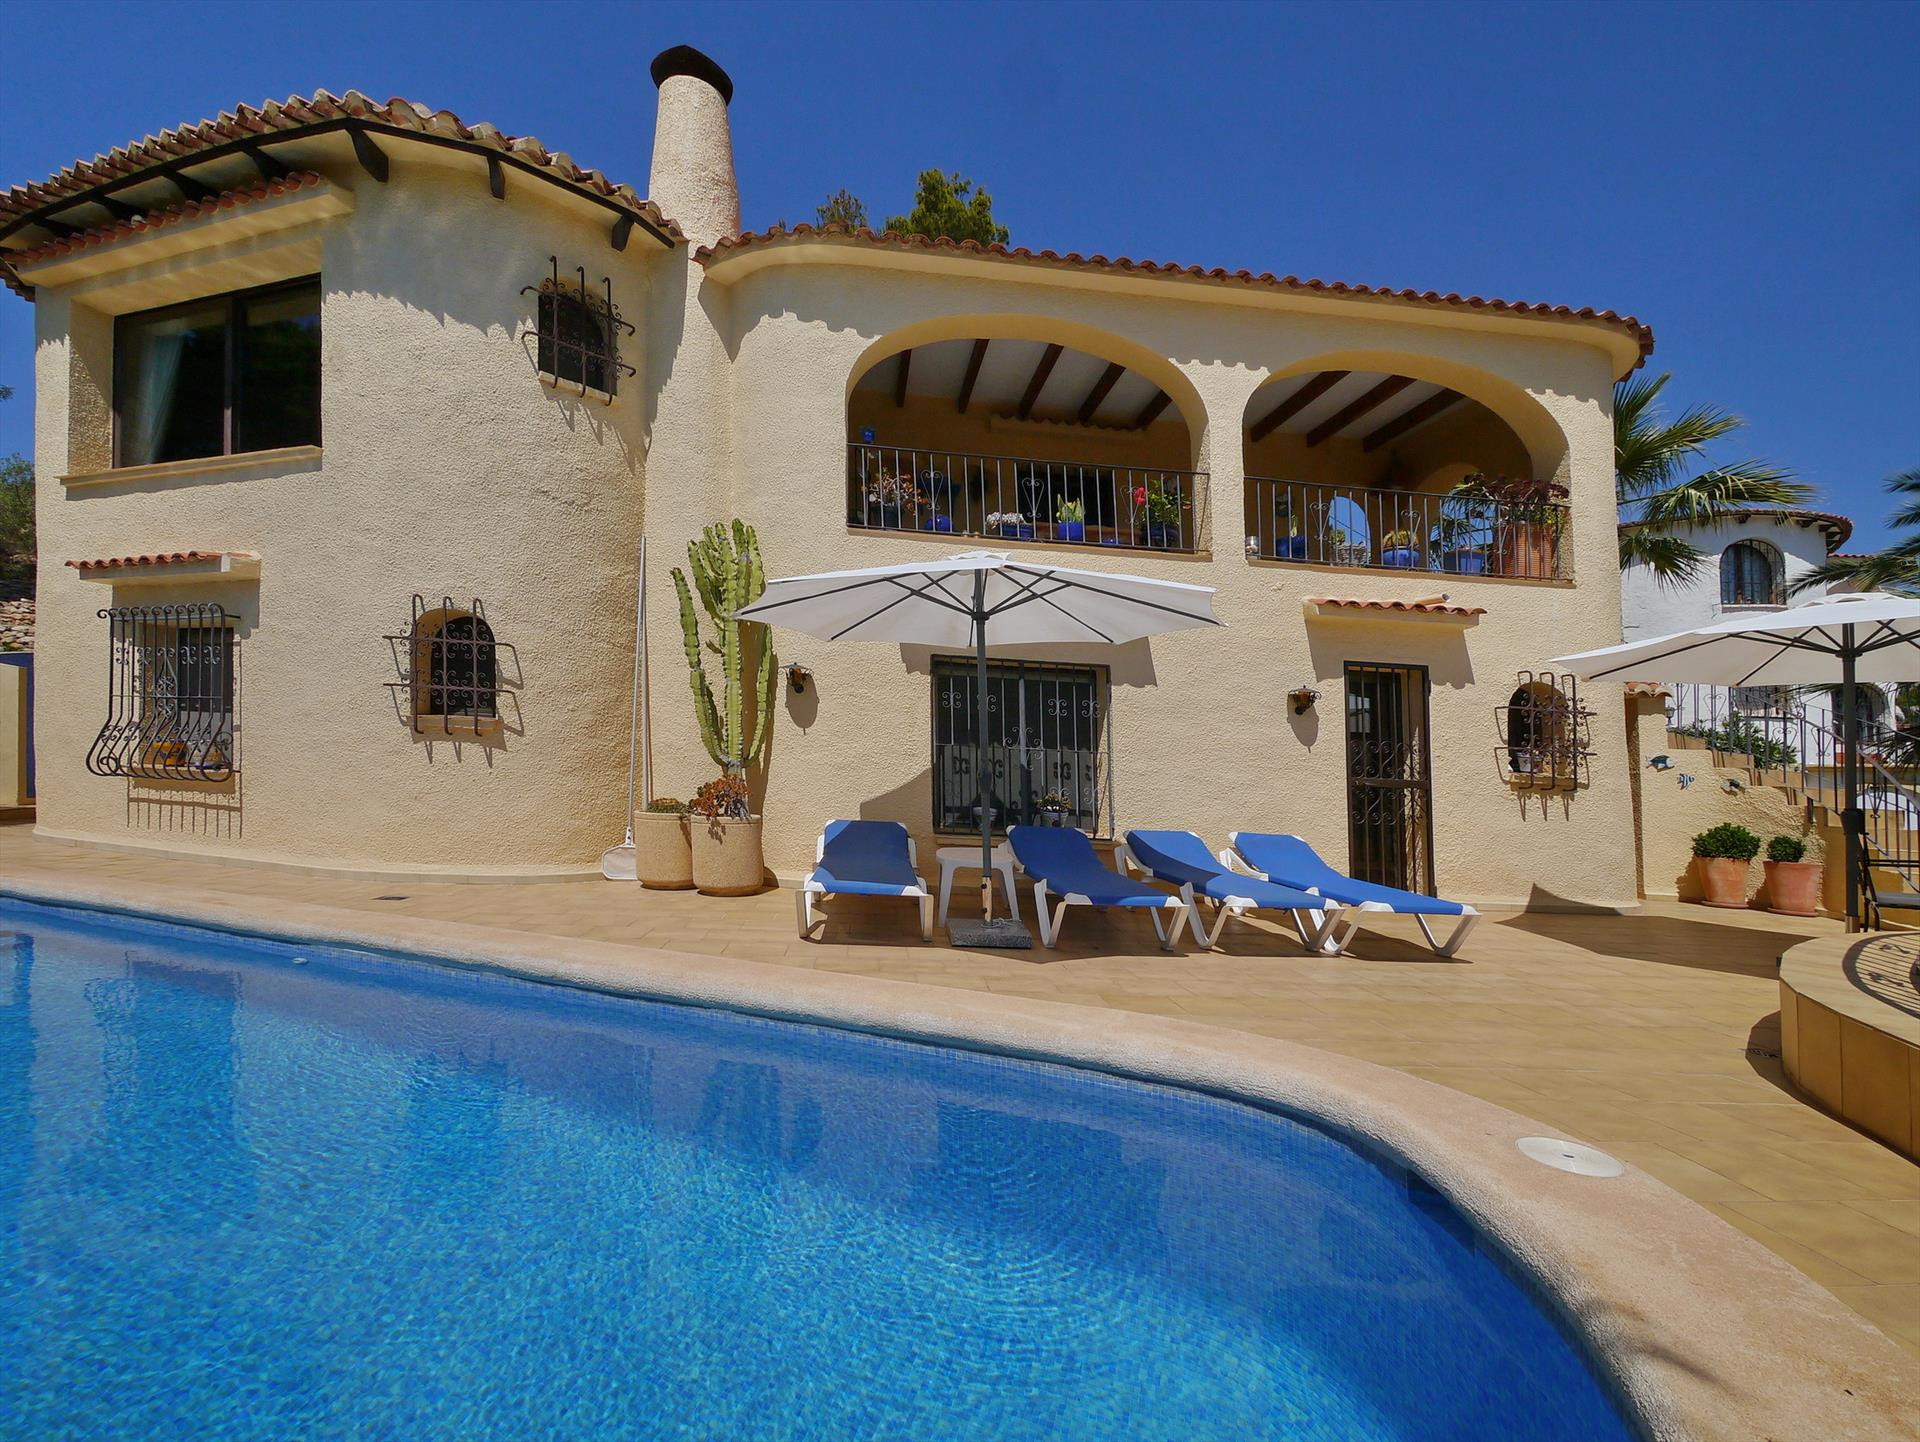 Buenavista, Villa in Benissa, on the Costa Blanca, Spain with private pool for 6 persons. The villa is situated in a coastal, hilly.....